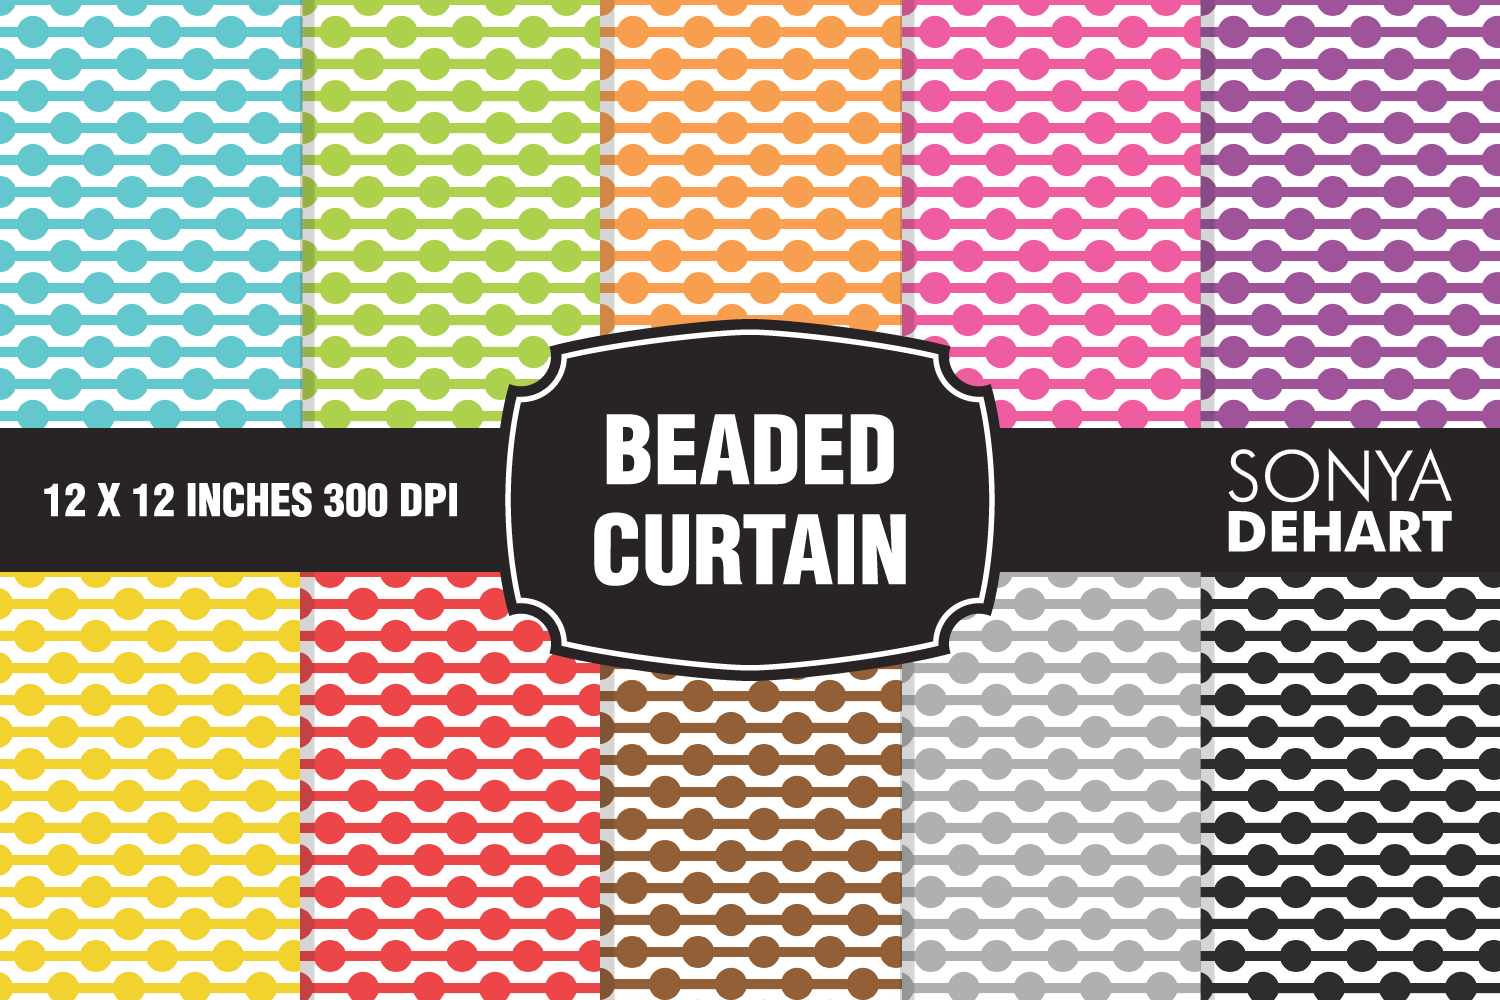 Beaded Curtain Polka Dot Chain Digital Paper Pattern Pack example image 1